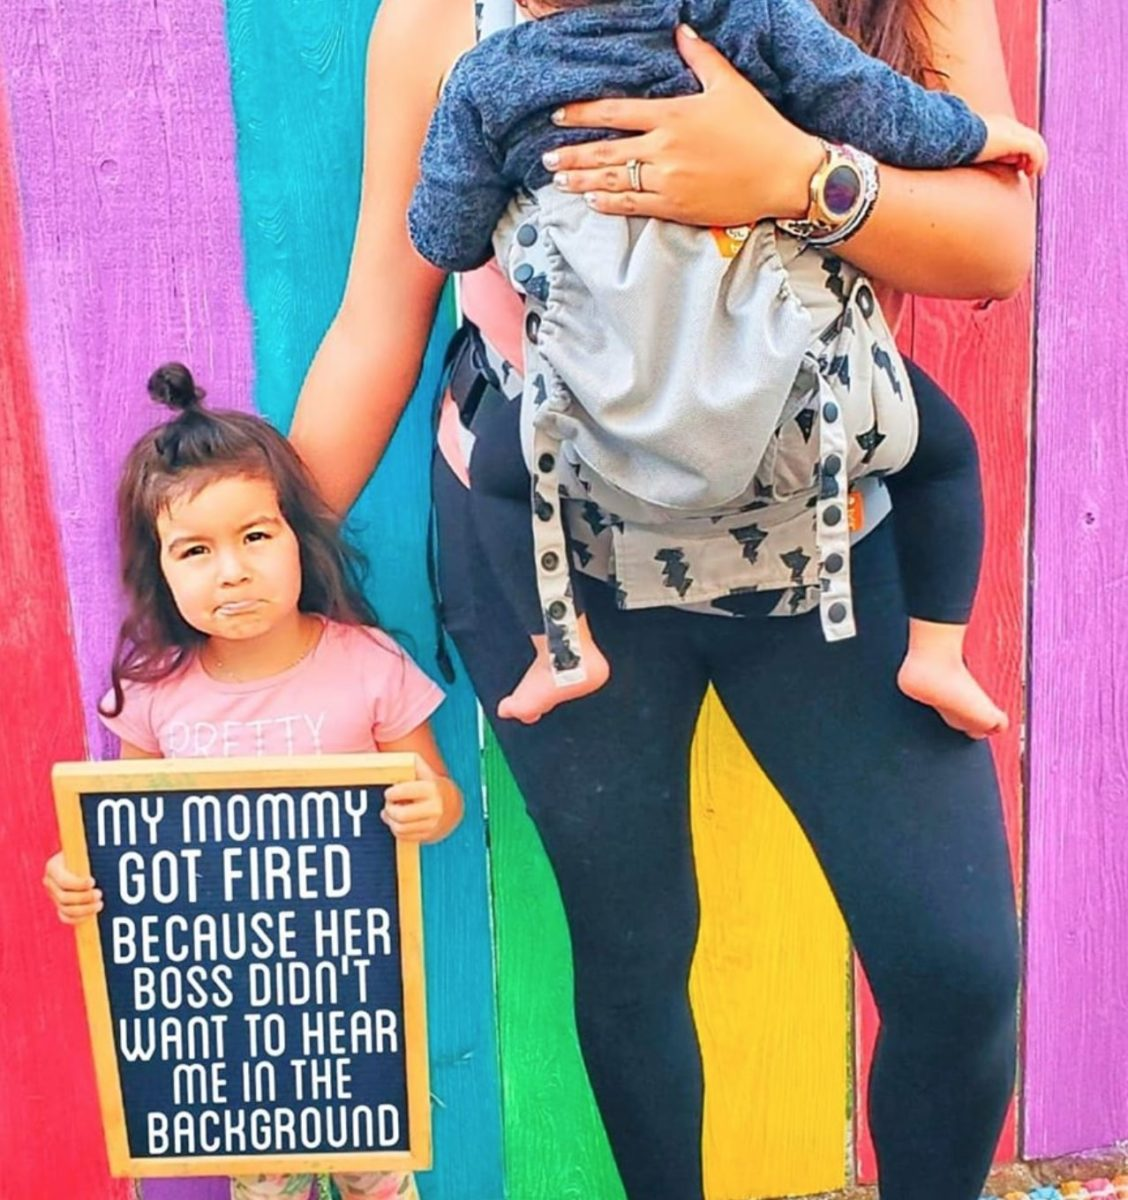 Mom Sues Former Employer For Getting Fired Over Noisy Kids